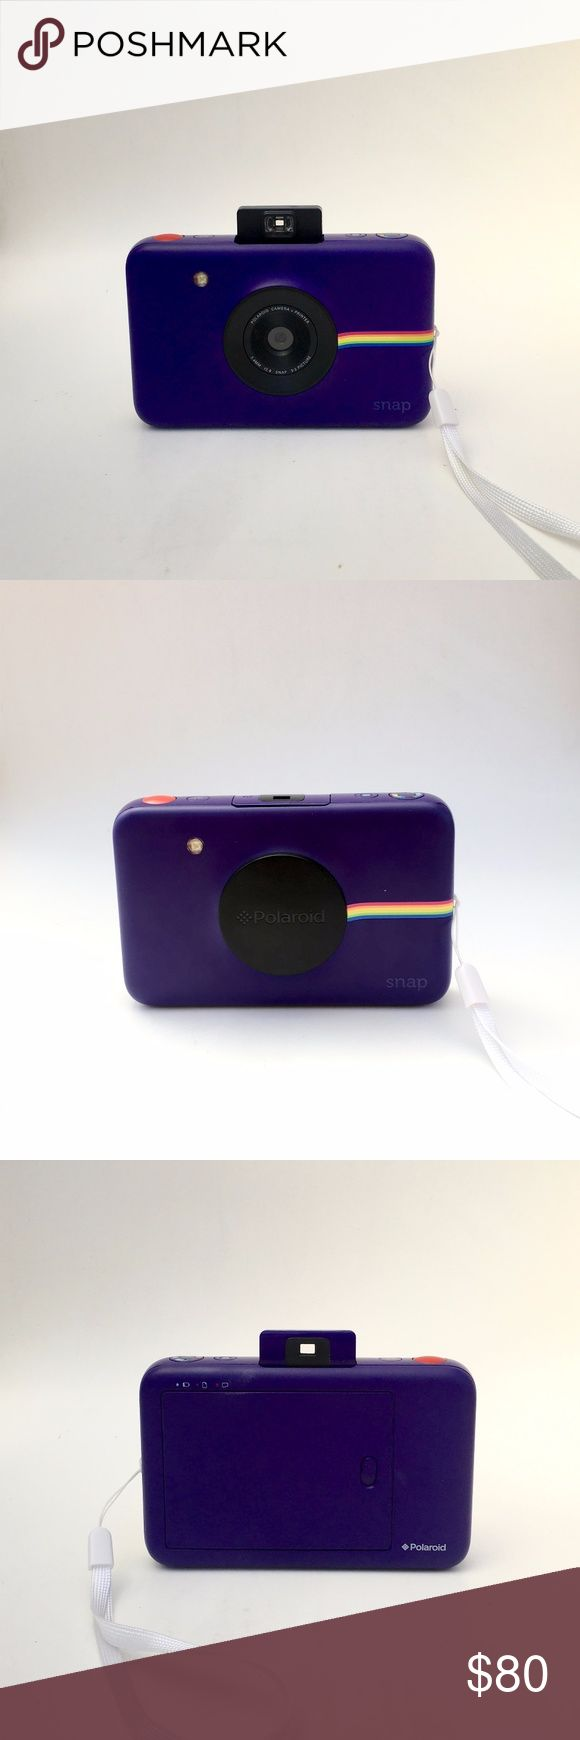 """Polaroid Snap Instant Digital Camera Used, in like new condition, fully functional Purple Polaroid Snap 10 megapixels normal, black & white and vintage sepia tone  MicroSD card indicator Self timer feature Image prints automatically 2x3"""" full color prints  Comes with charging cable Polaroid Accessories"""